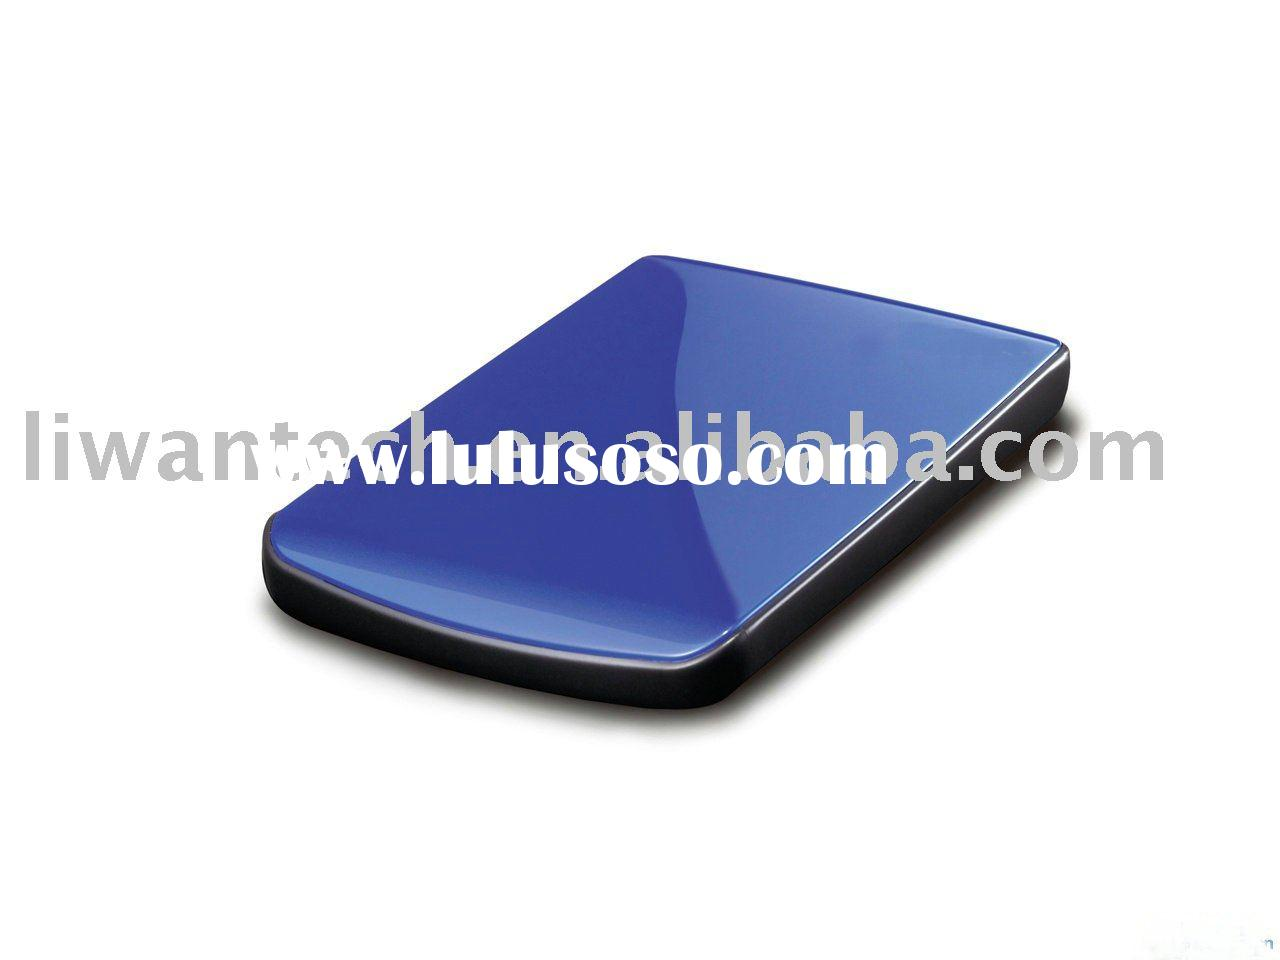 USB 2.0 Portable External Hard Drive